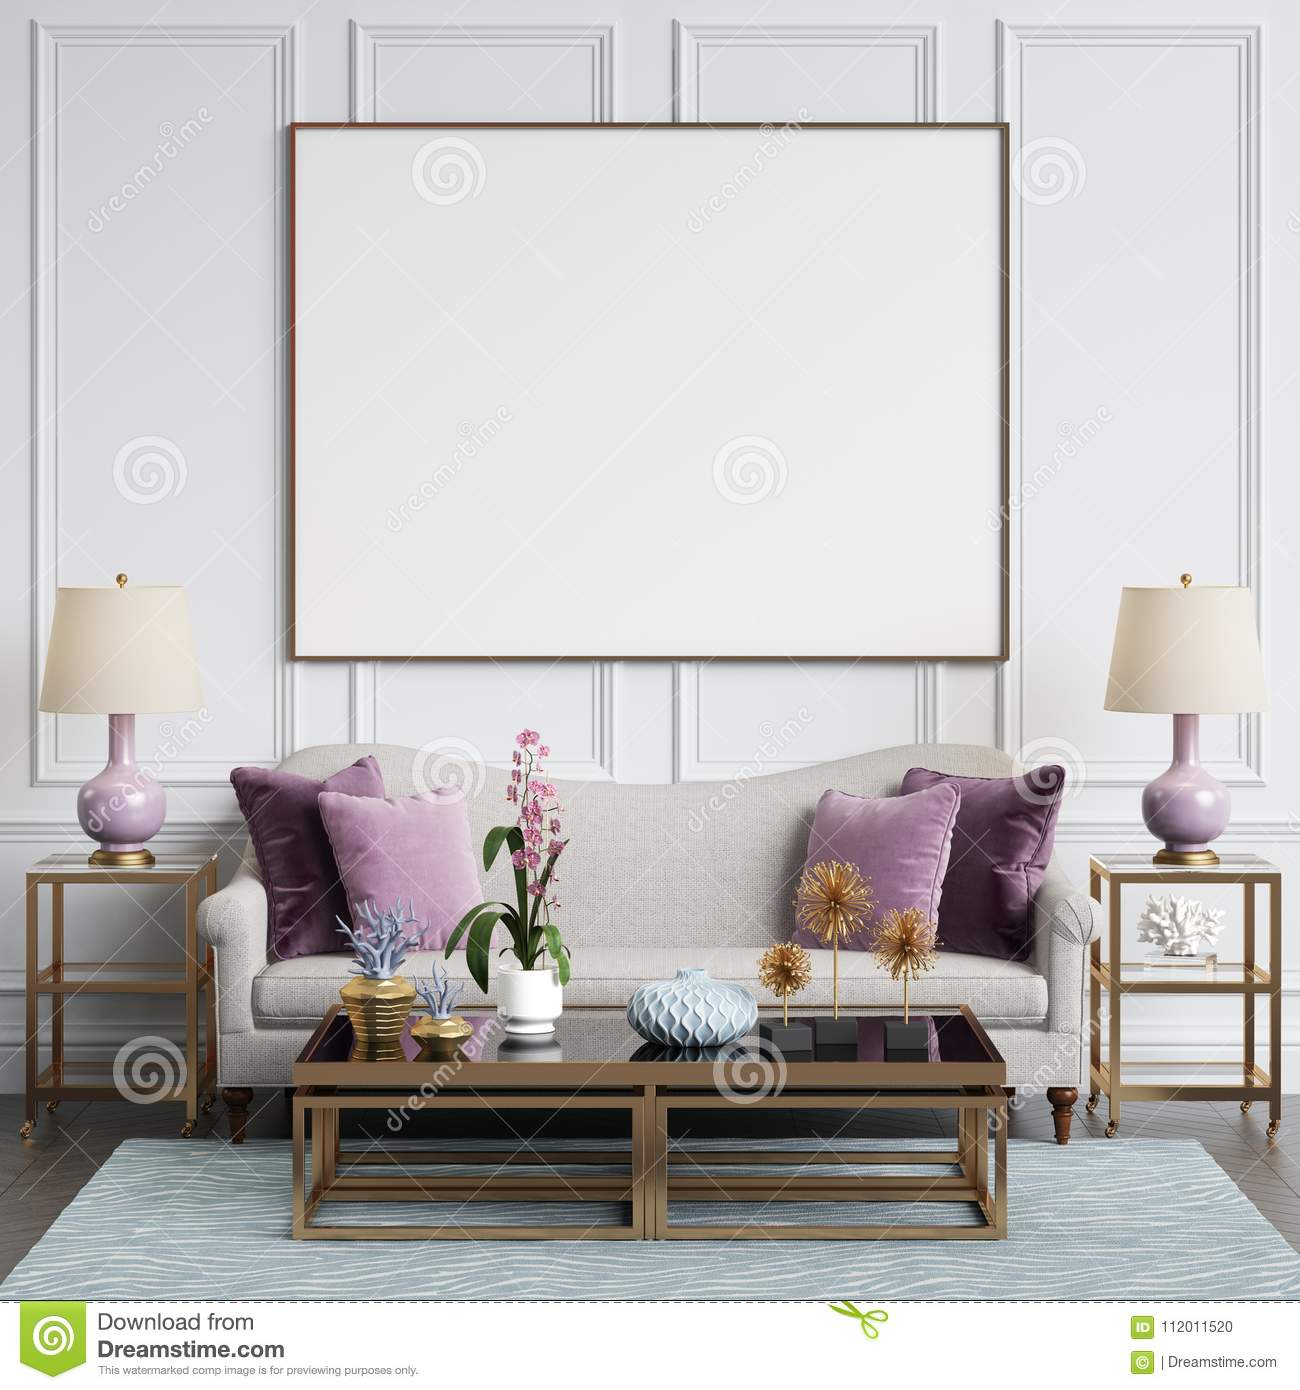 Classic interior in pastel colors with blank frame on the wall